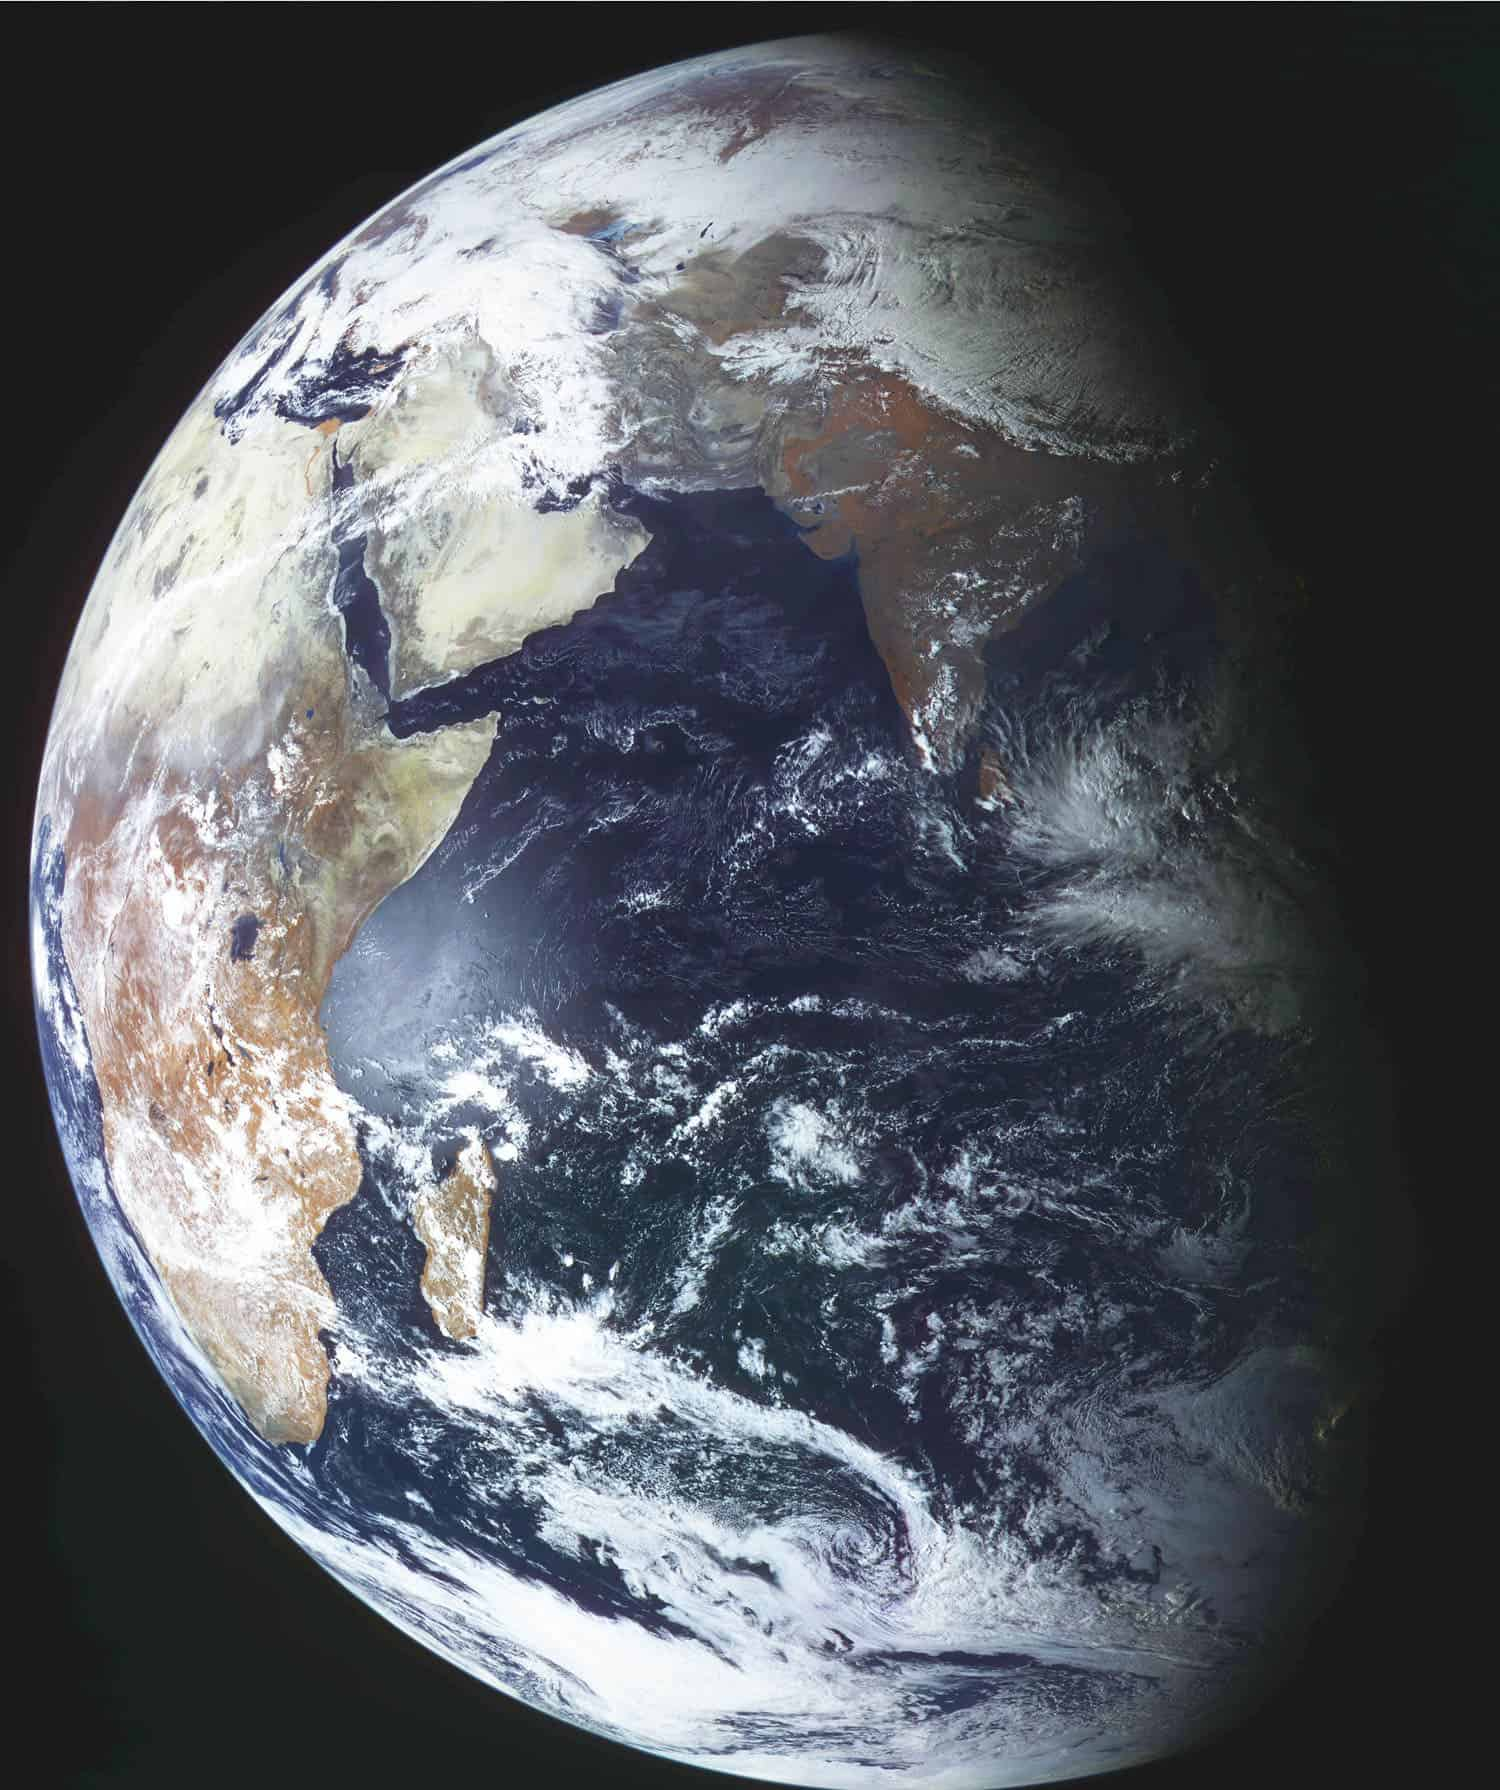 Stunning Photo Of The Earth Captured By New Russian Satellite - Photos from satellite